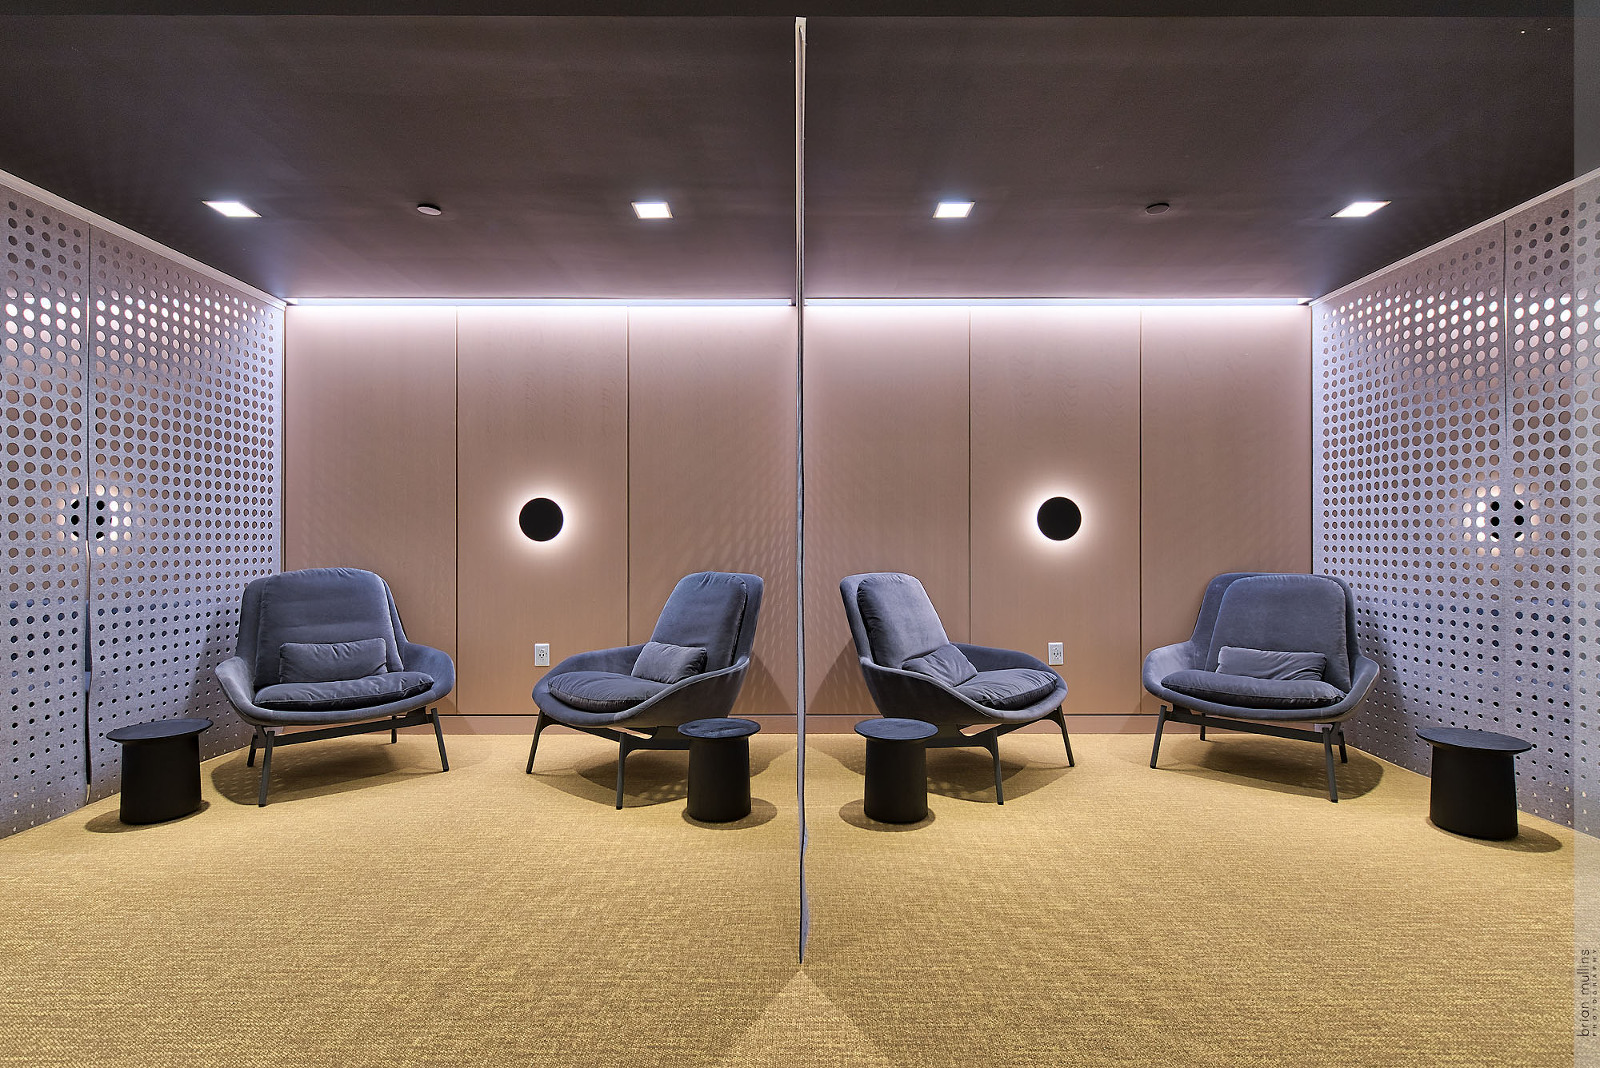 Commercial architecture interior seating area